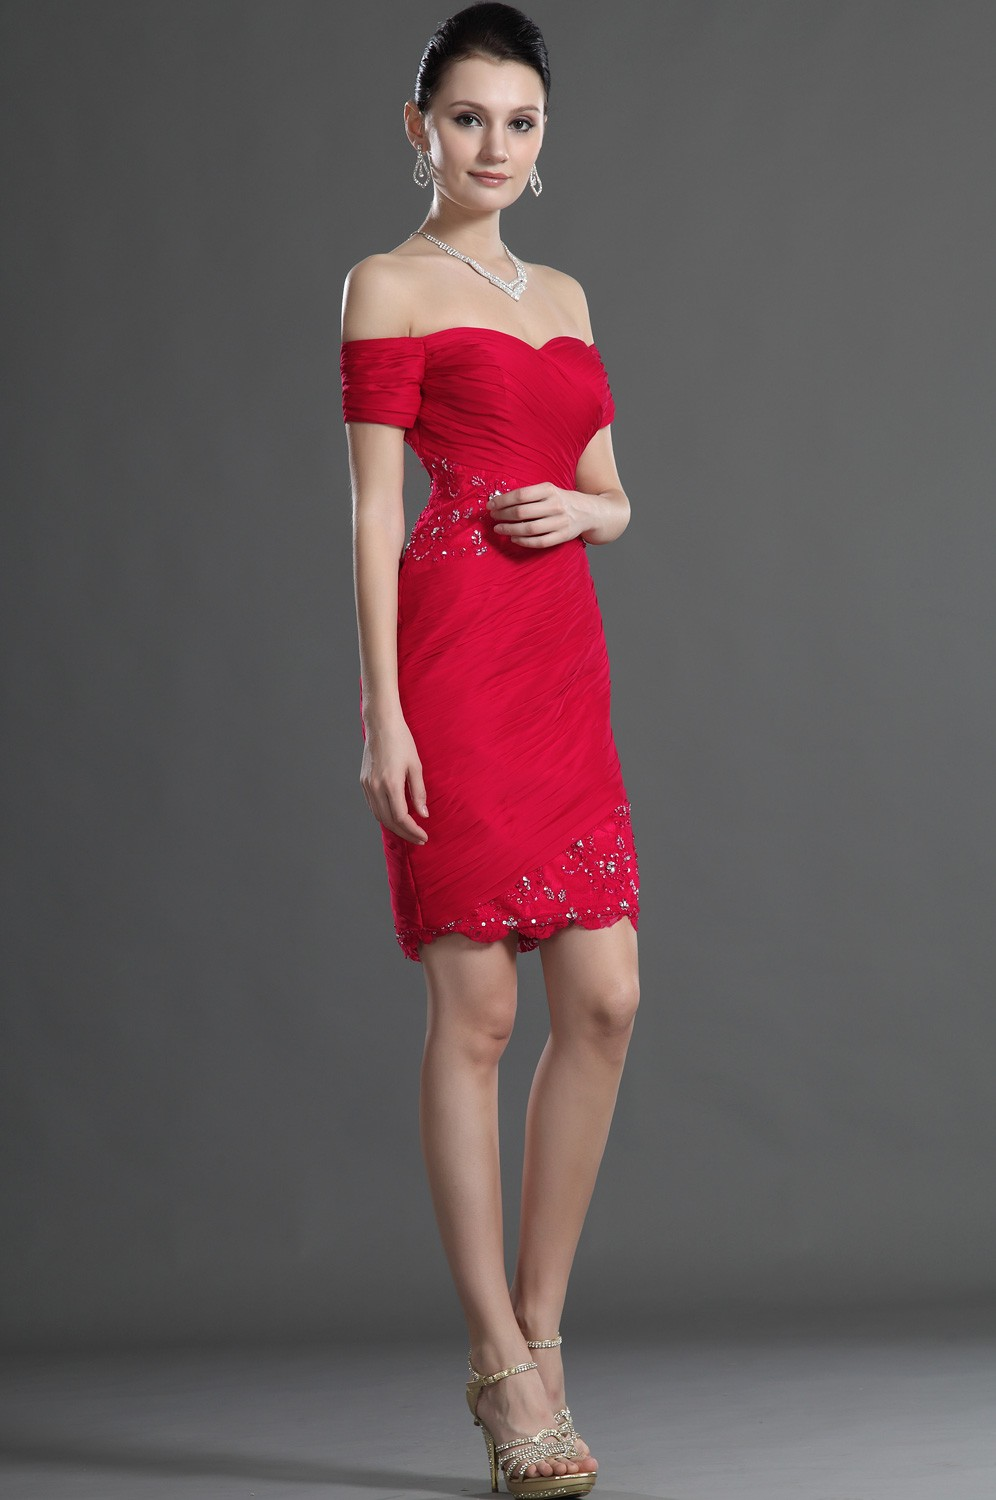 Red Cocktail Dress | Dressed Up Girl